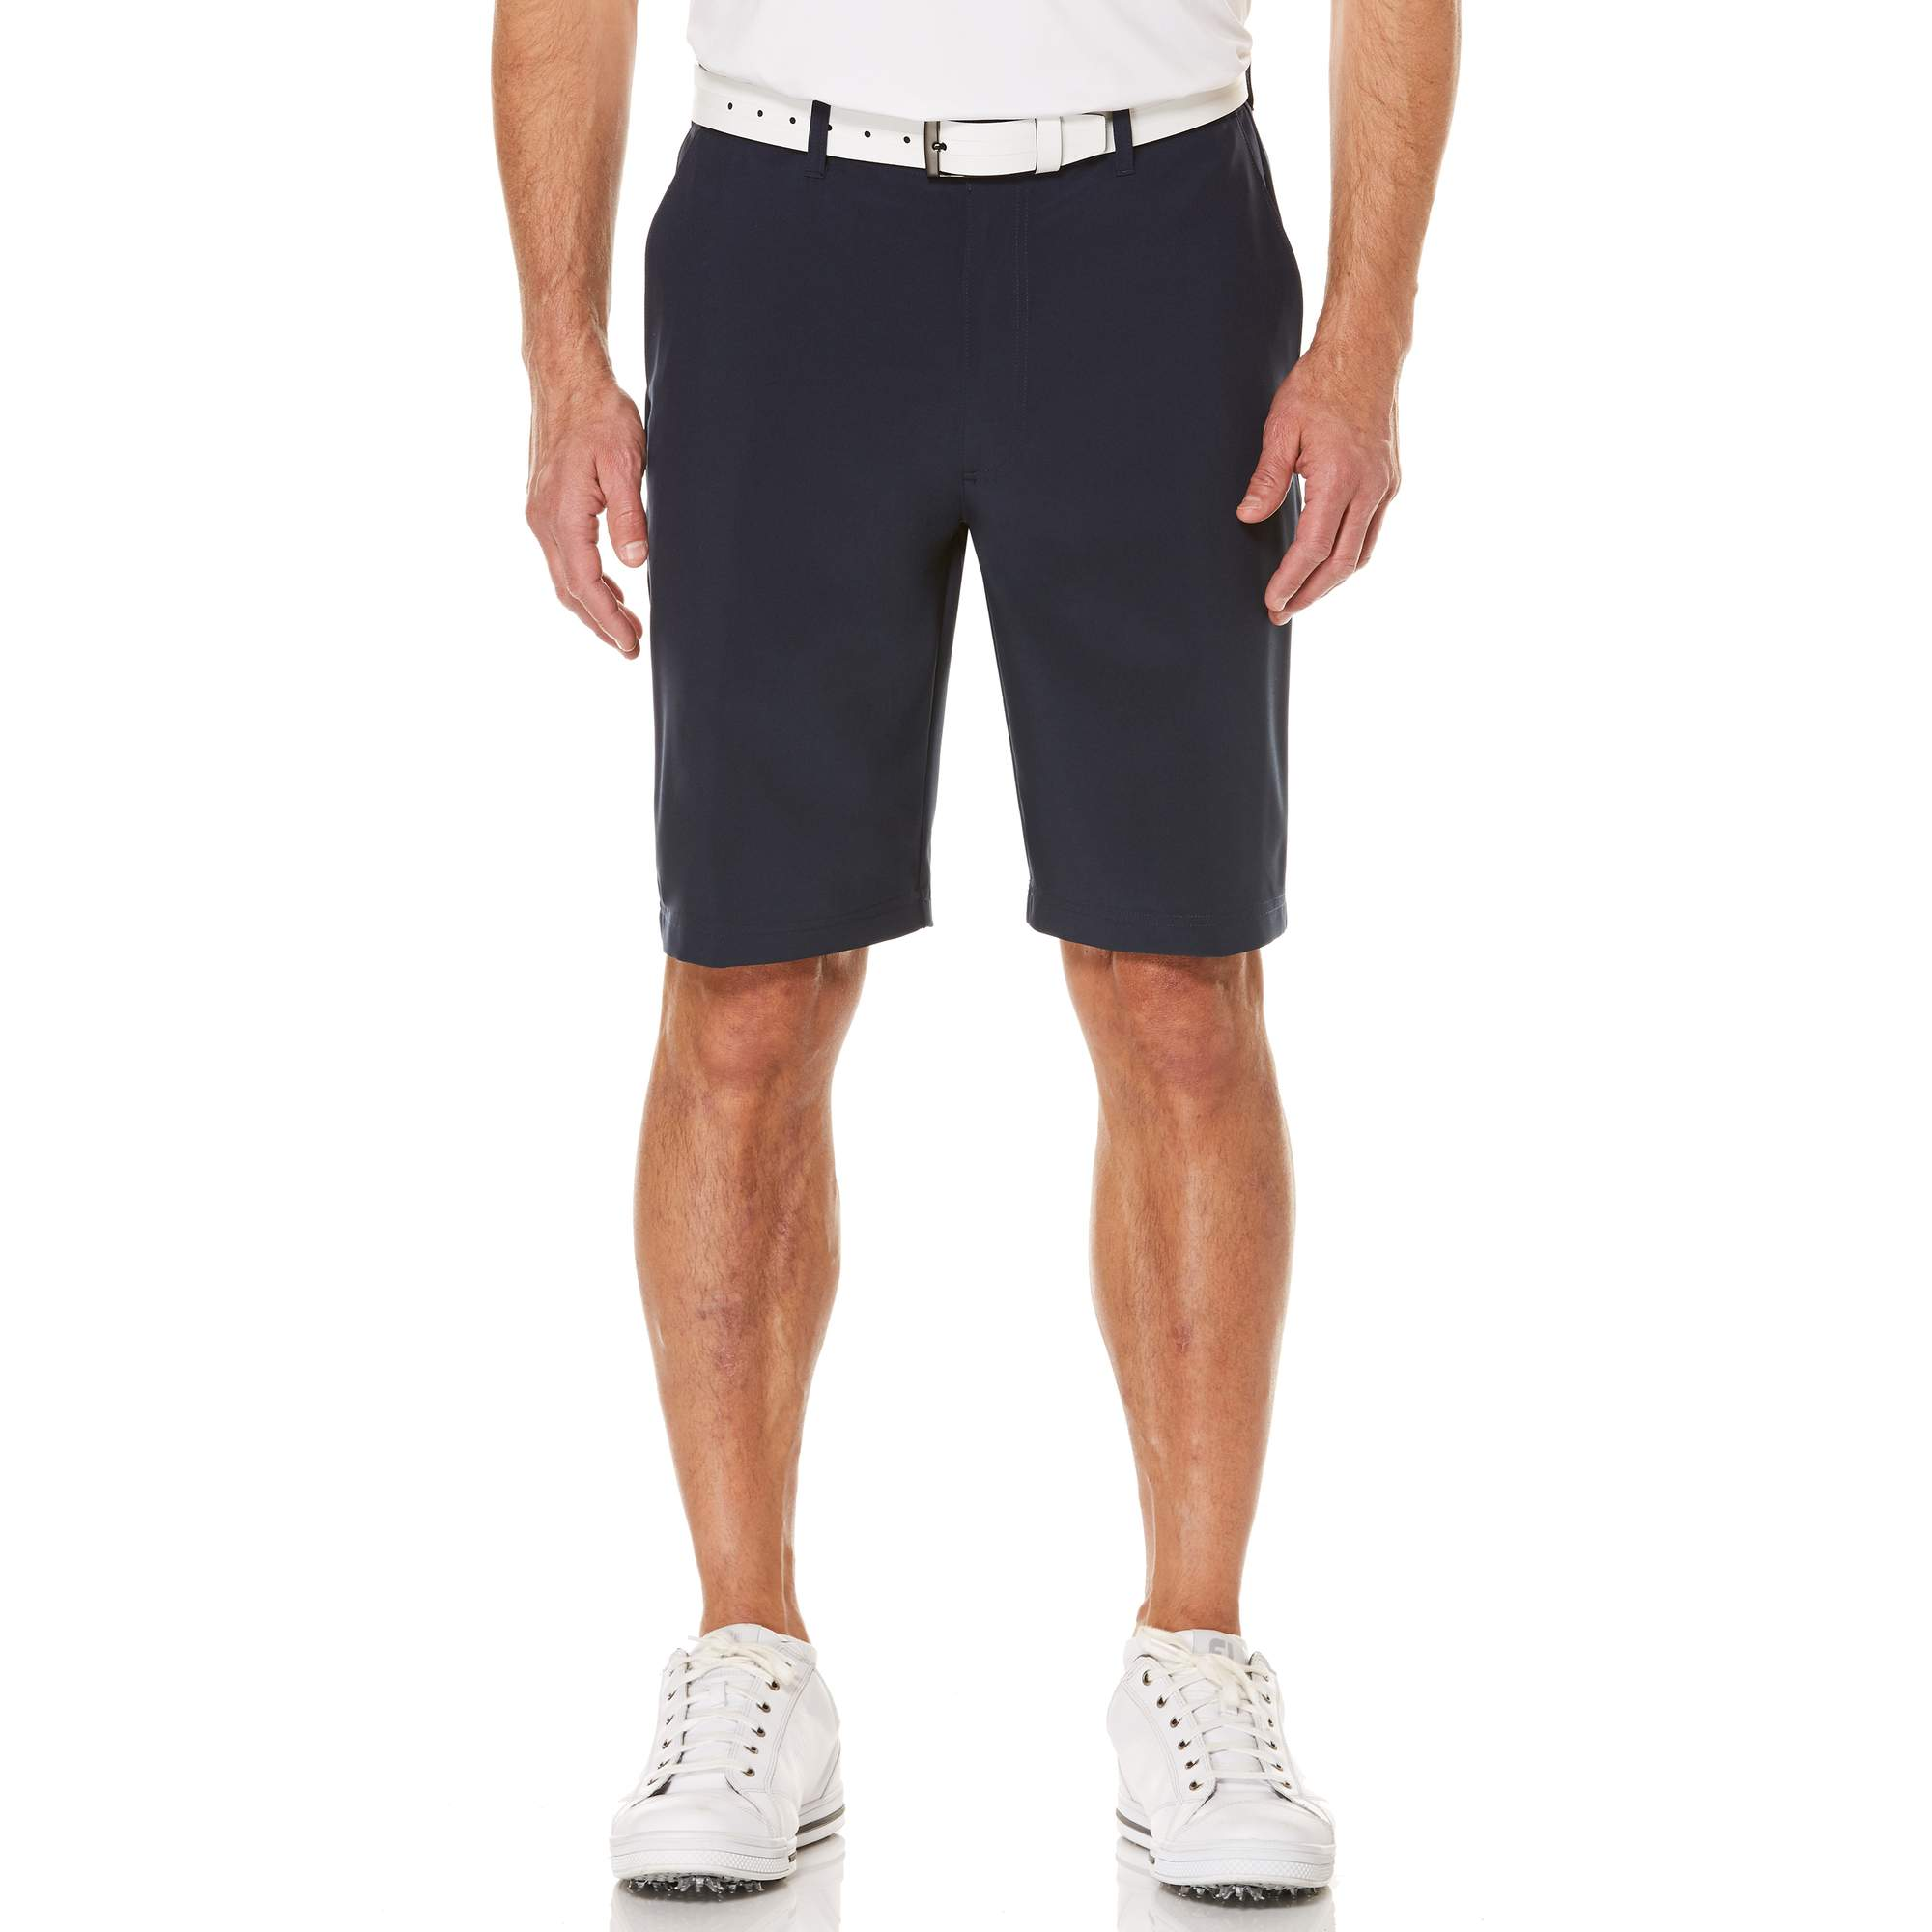 Men's Performance Flat Front Active Flex Waistband Four Way Stretch Shorts